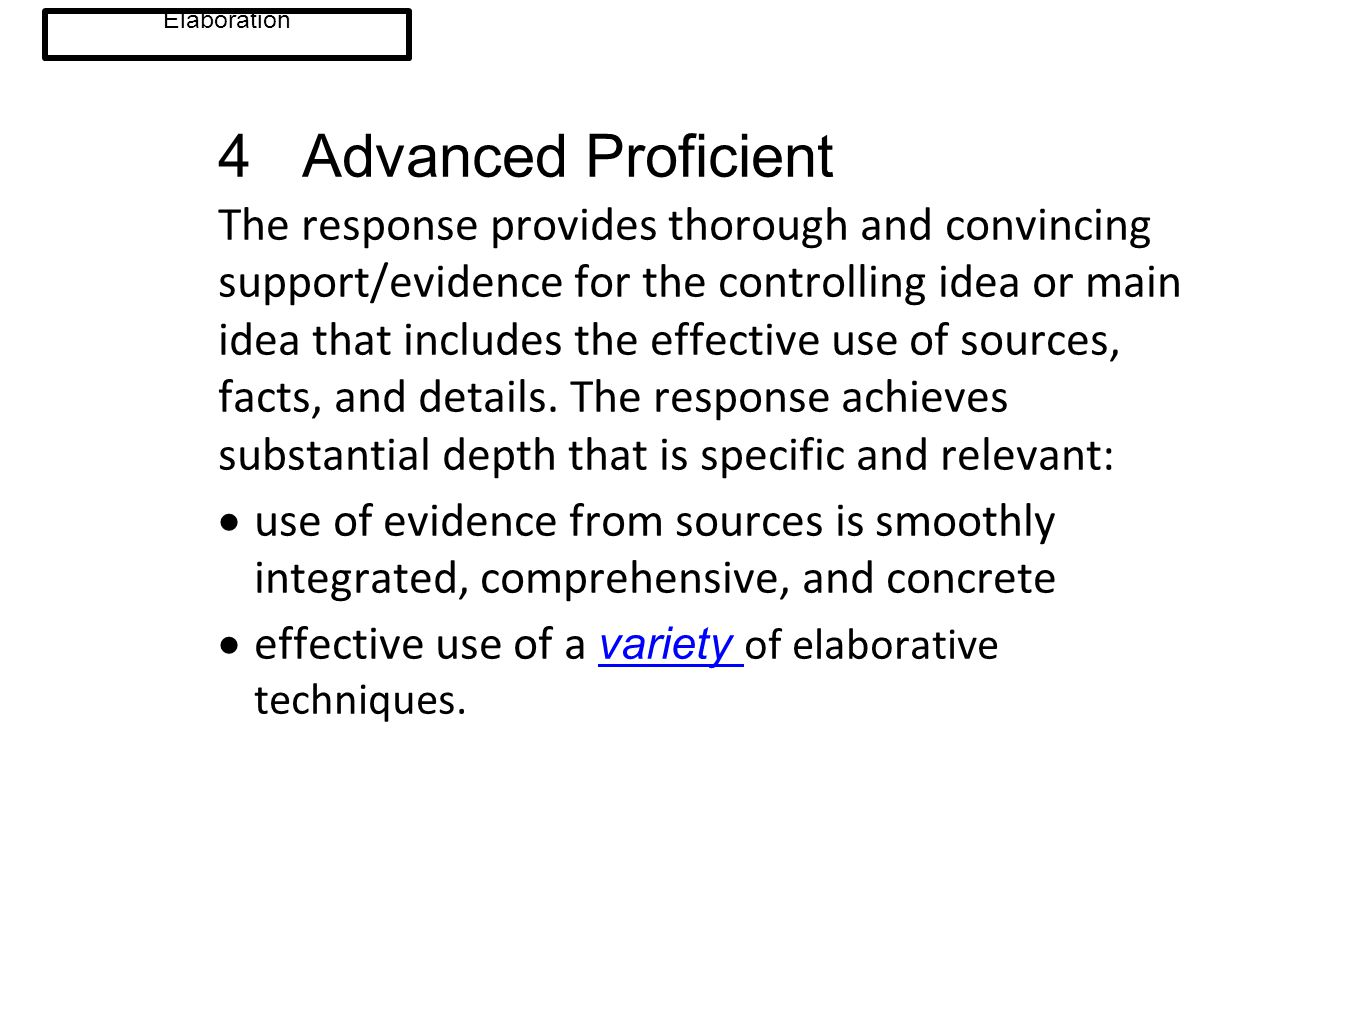 4 Advanced Proficient The response provides thorough and convincing support/evidence for the controlling idea or main idea that includes the effective